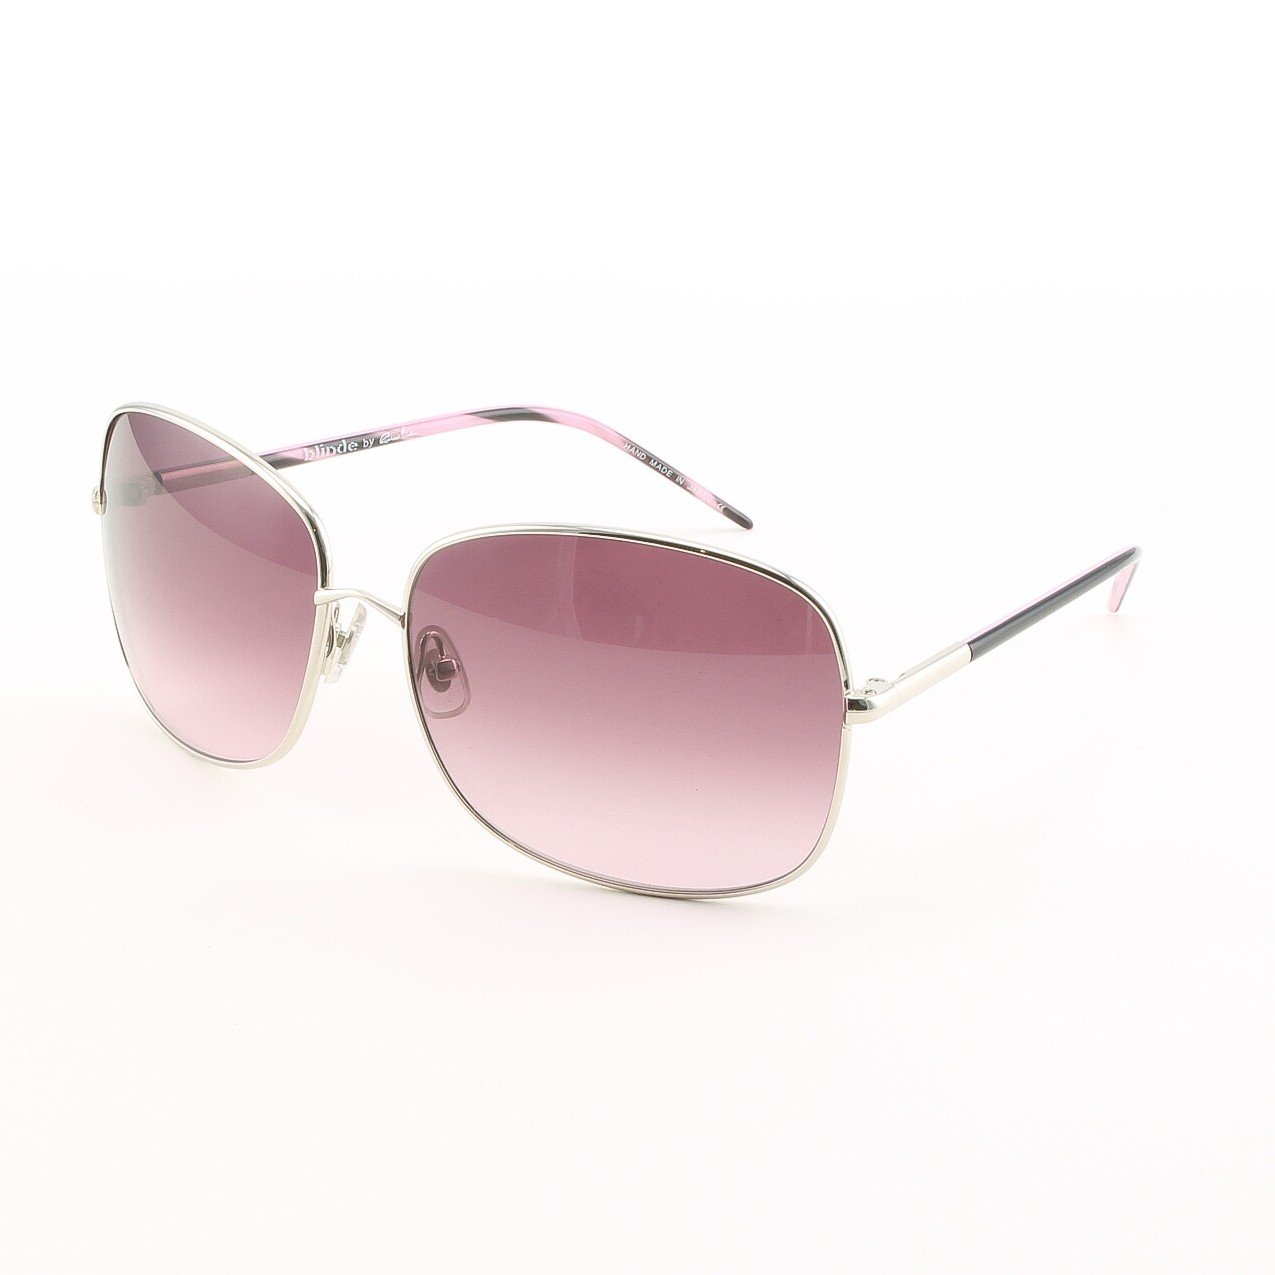 Blinde Whip It Women's Sunglasses Col. Silver with Pink Gradient Lenses